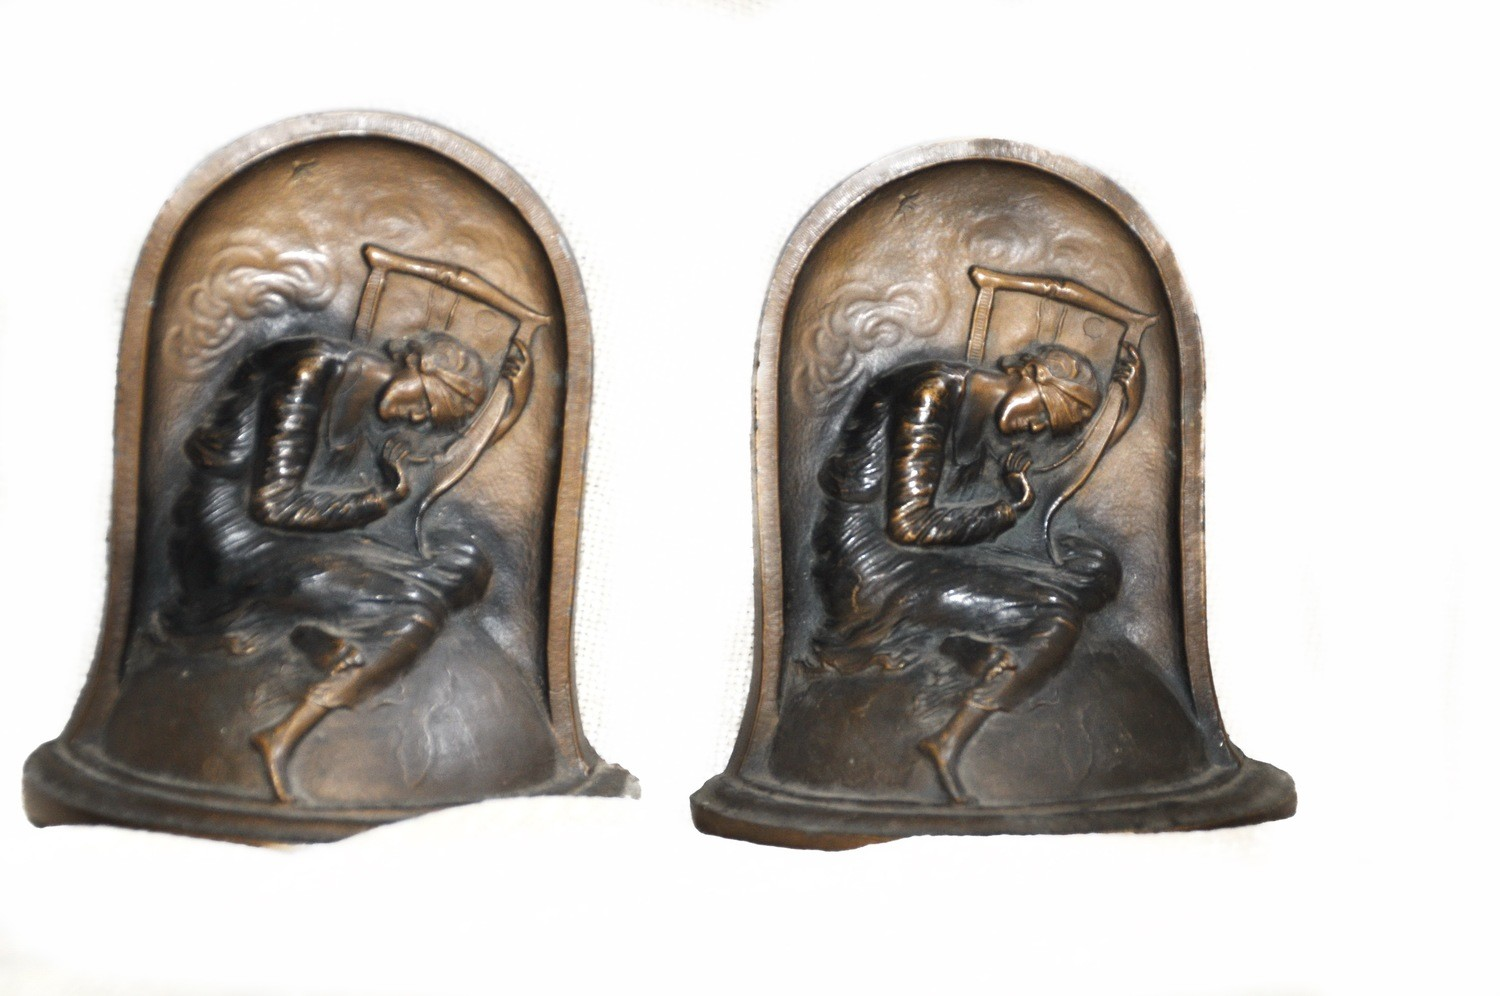 Art deco Polychrome Bronze George Frederick Watts Hope Bookends